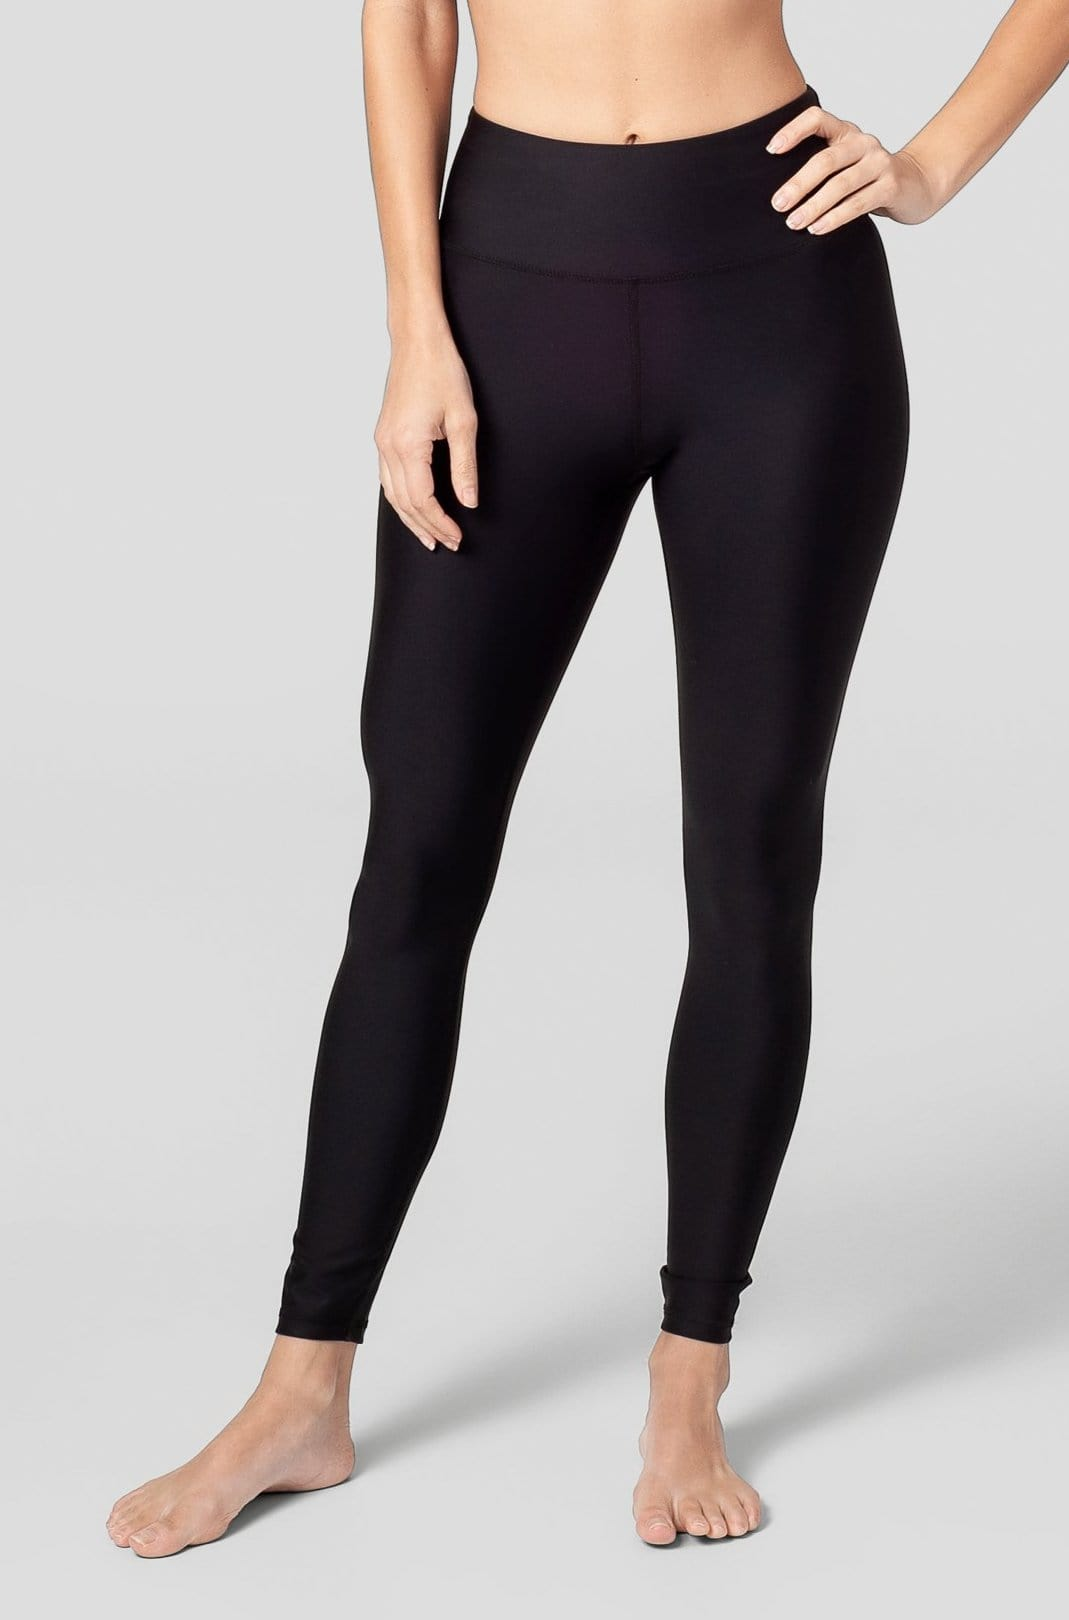 Riley Legging in Classic Black